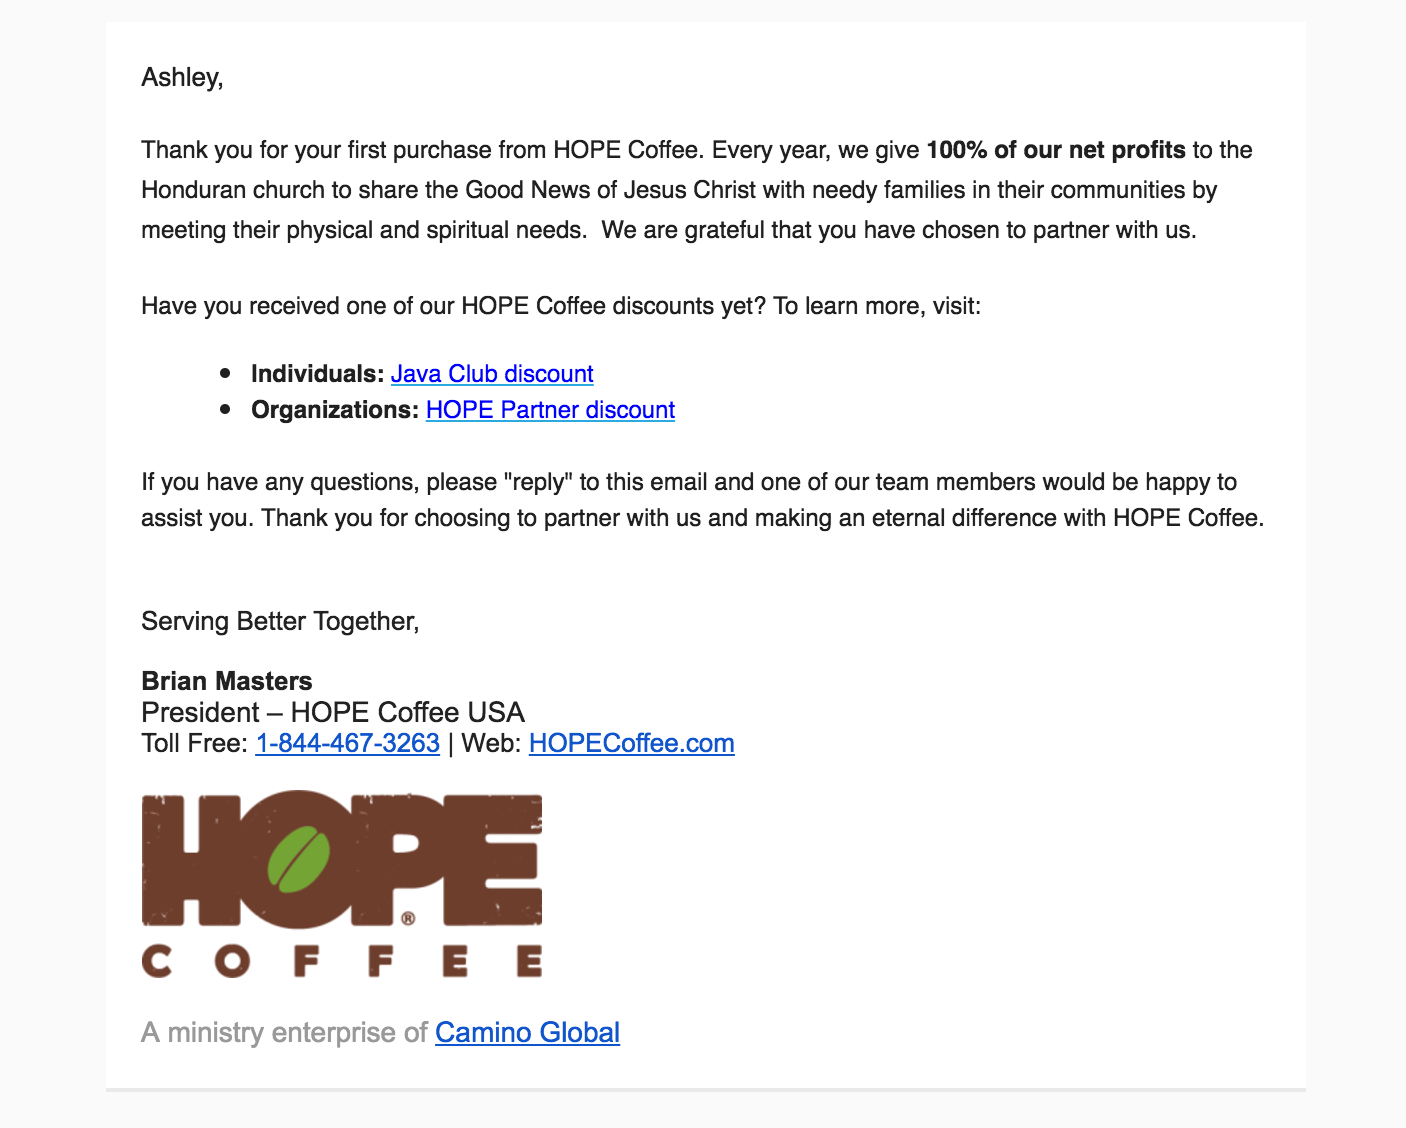 Hope Coffee email marketing